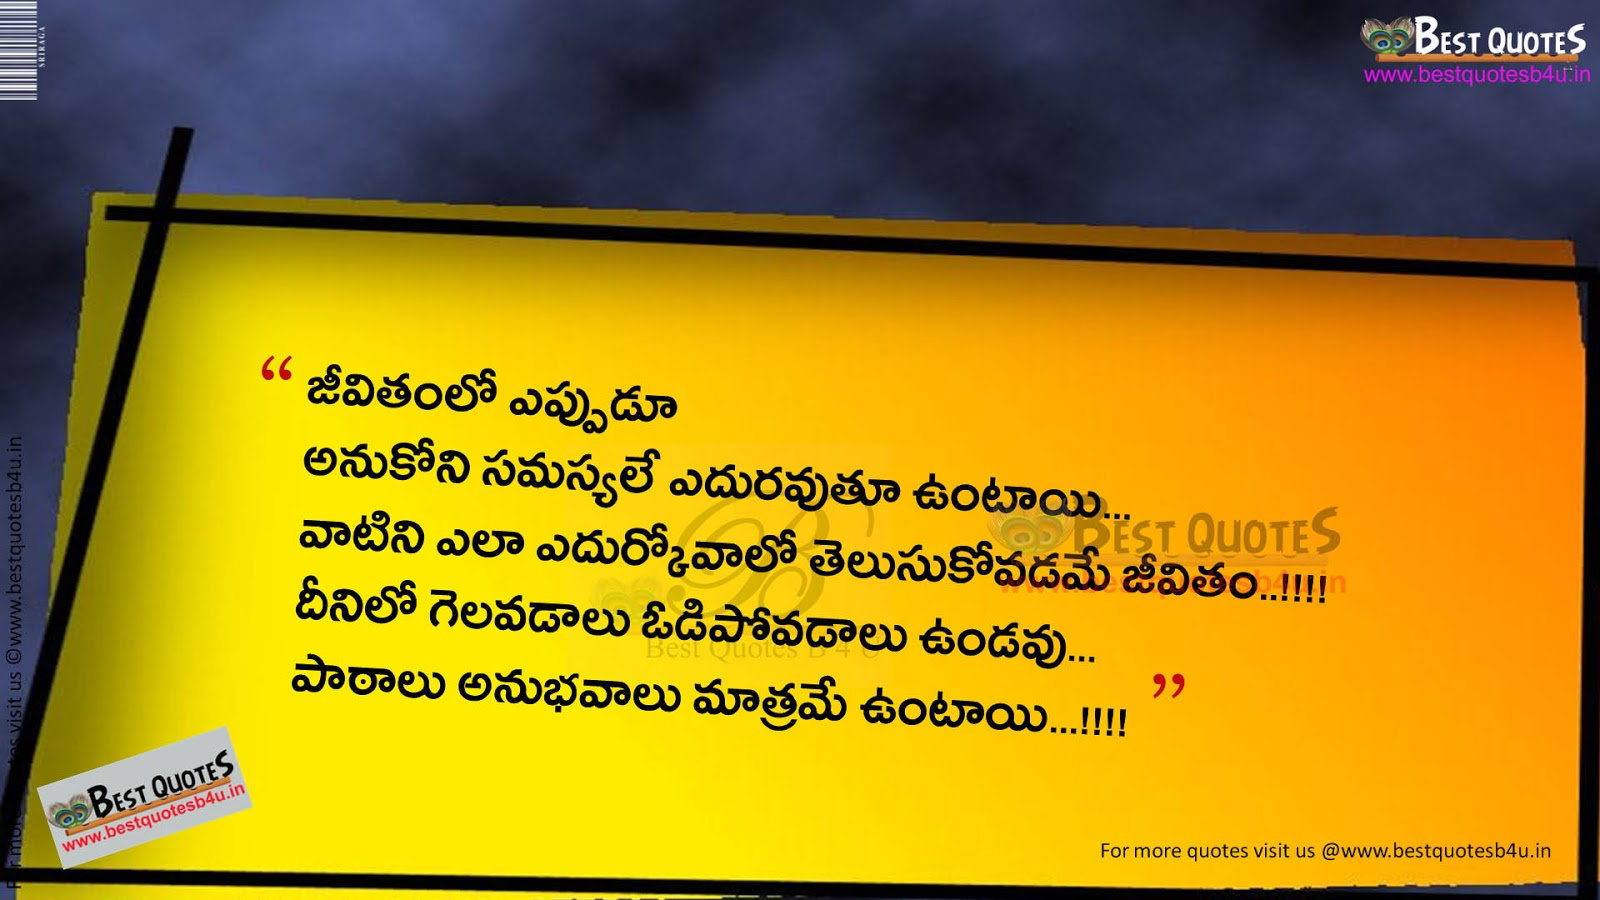 Good Heart Touching Quotes Life: Heart Touching Life Quotes In Telugu